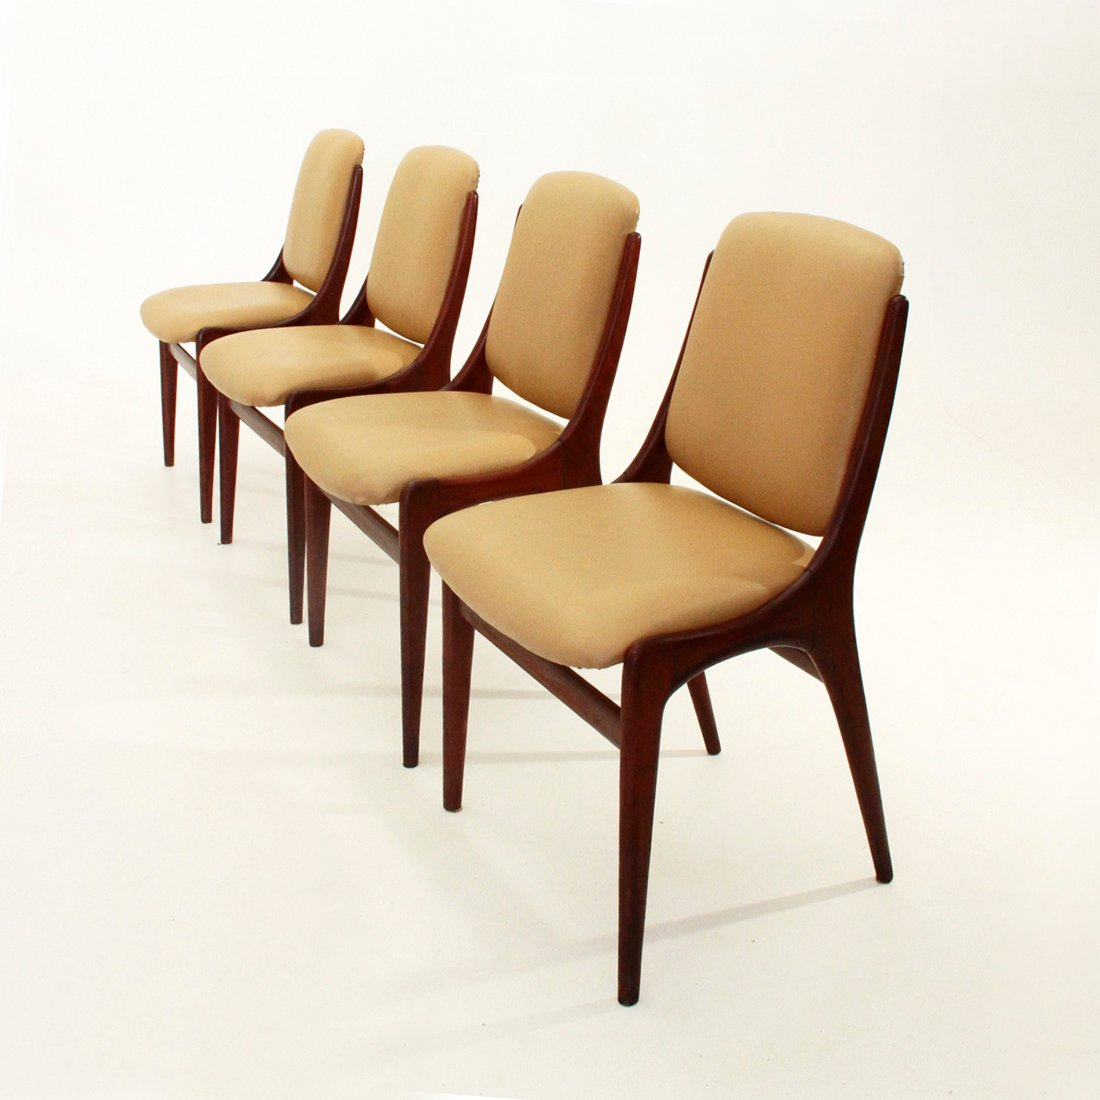 Mid Century Dining Chairs Italian Mid Century Dining Chairs 1960s Set Of 4 For